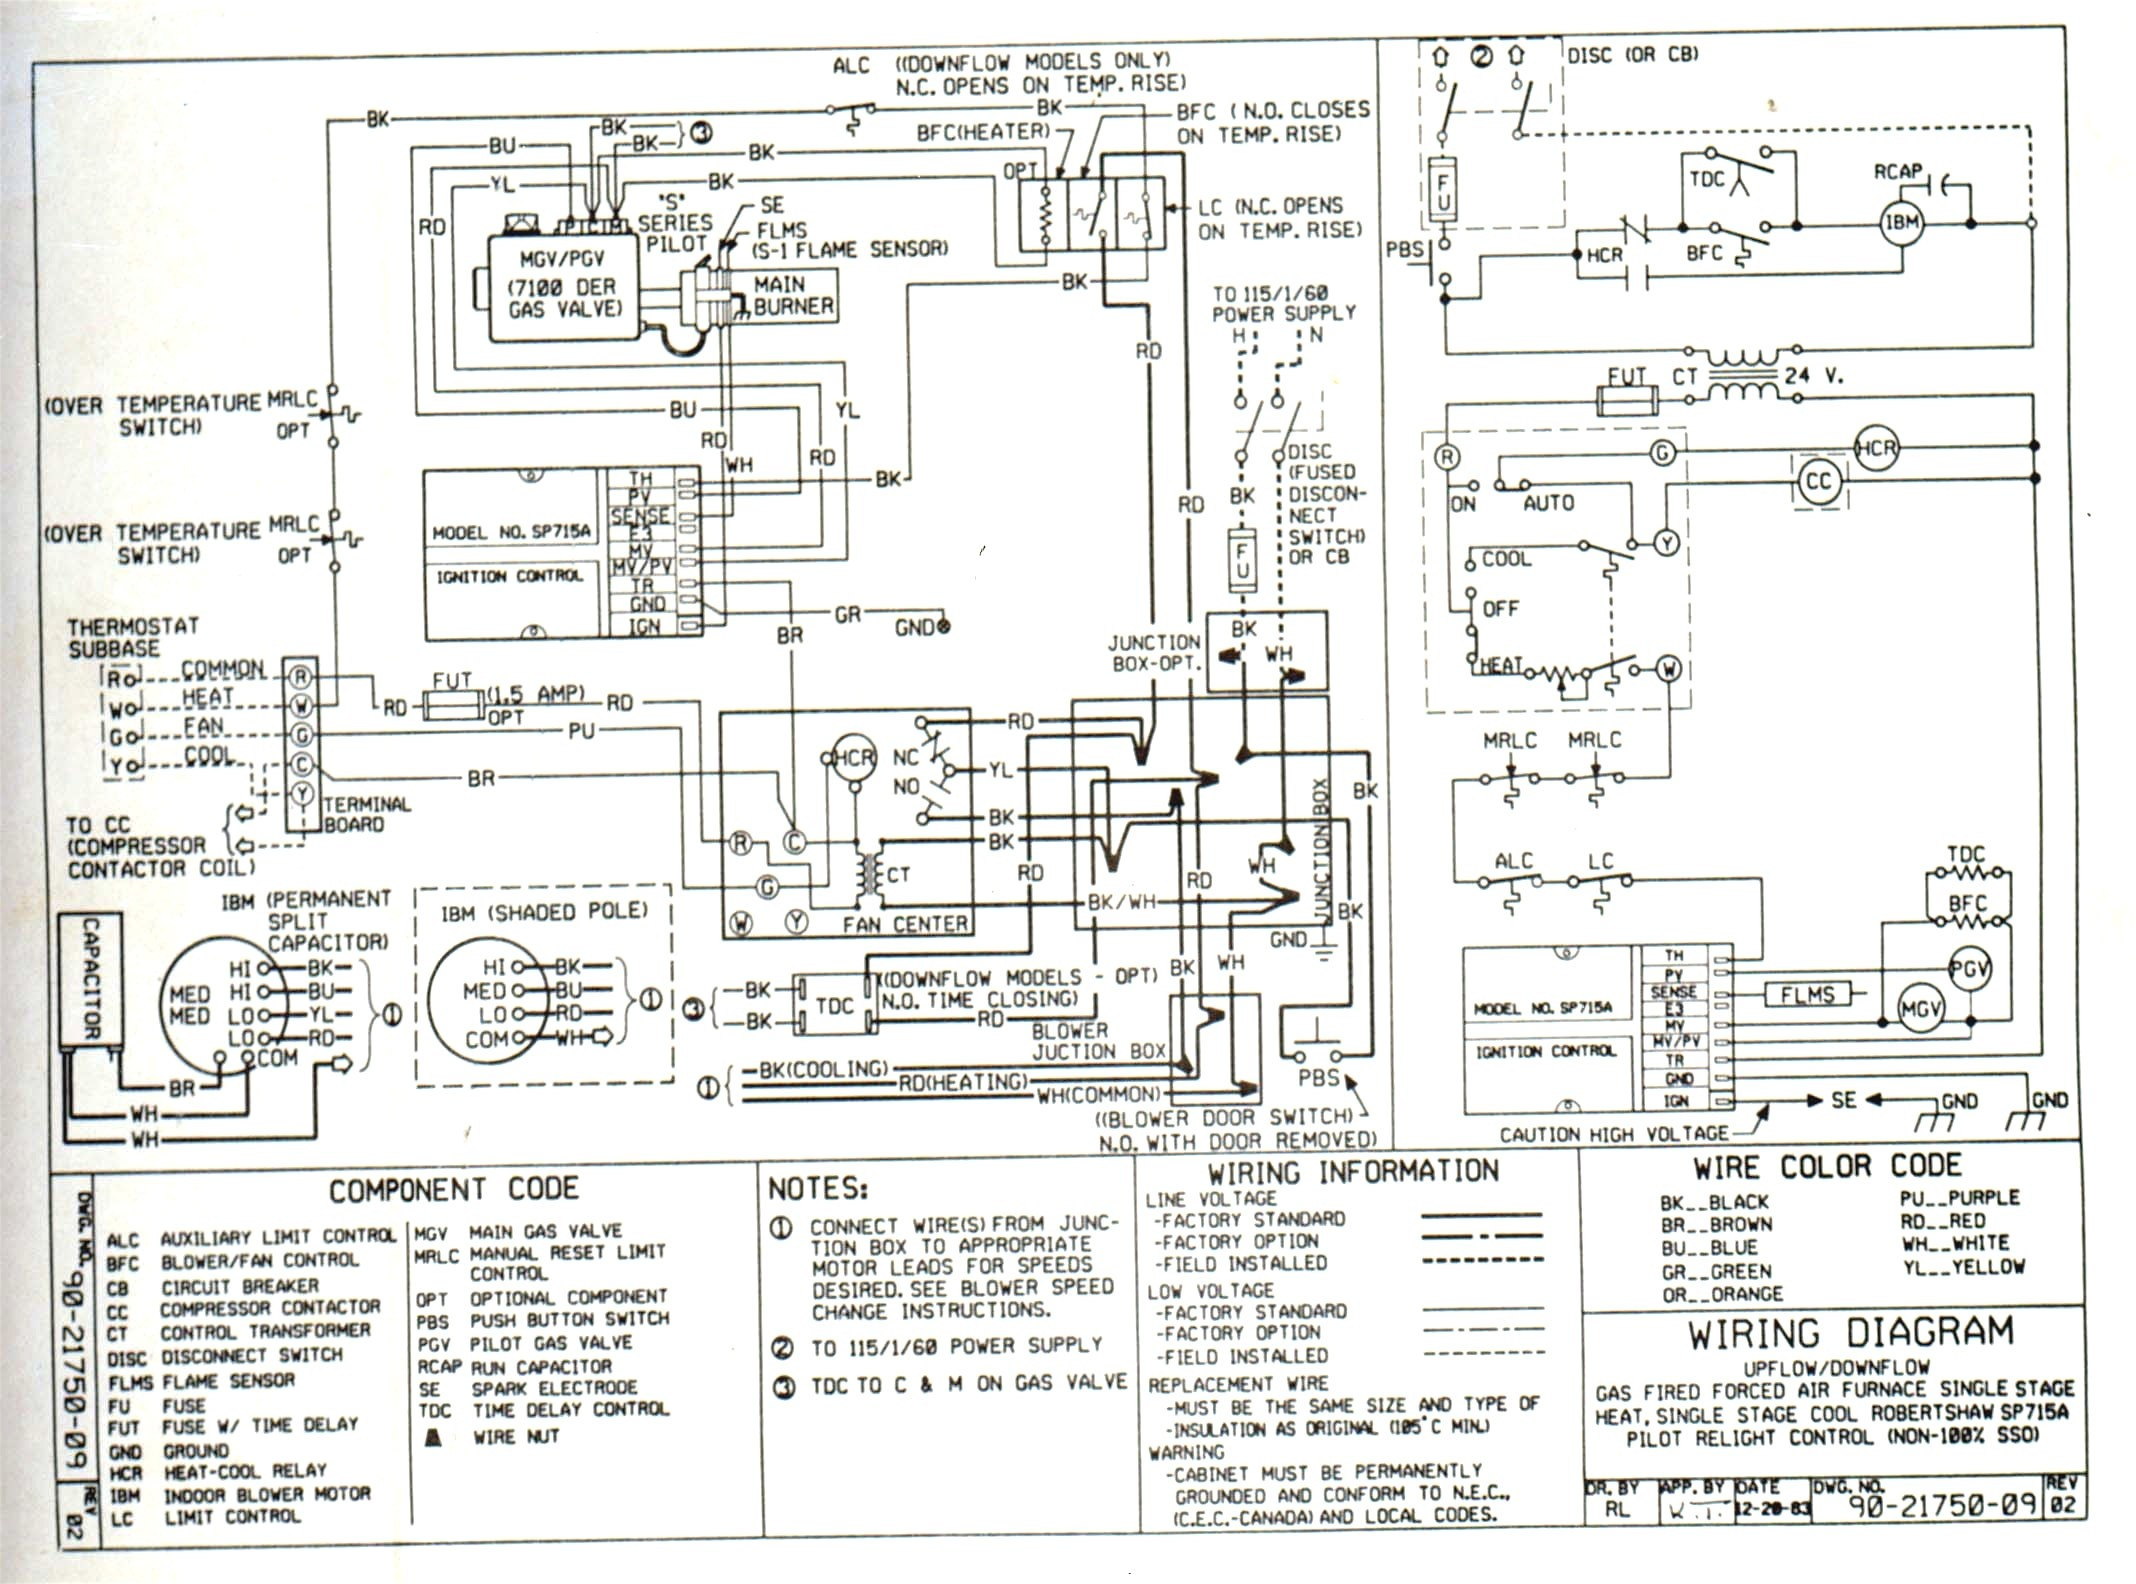 Wiring Diagram for York Heat Pump Inspirationa Hid Wiring Diagram with Relay and Capacitor Best Inspiration